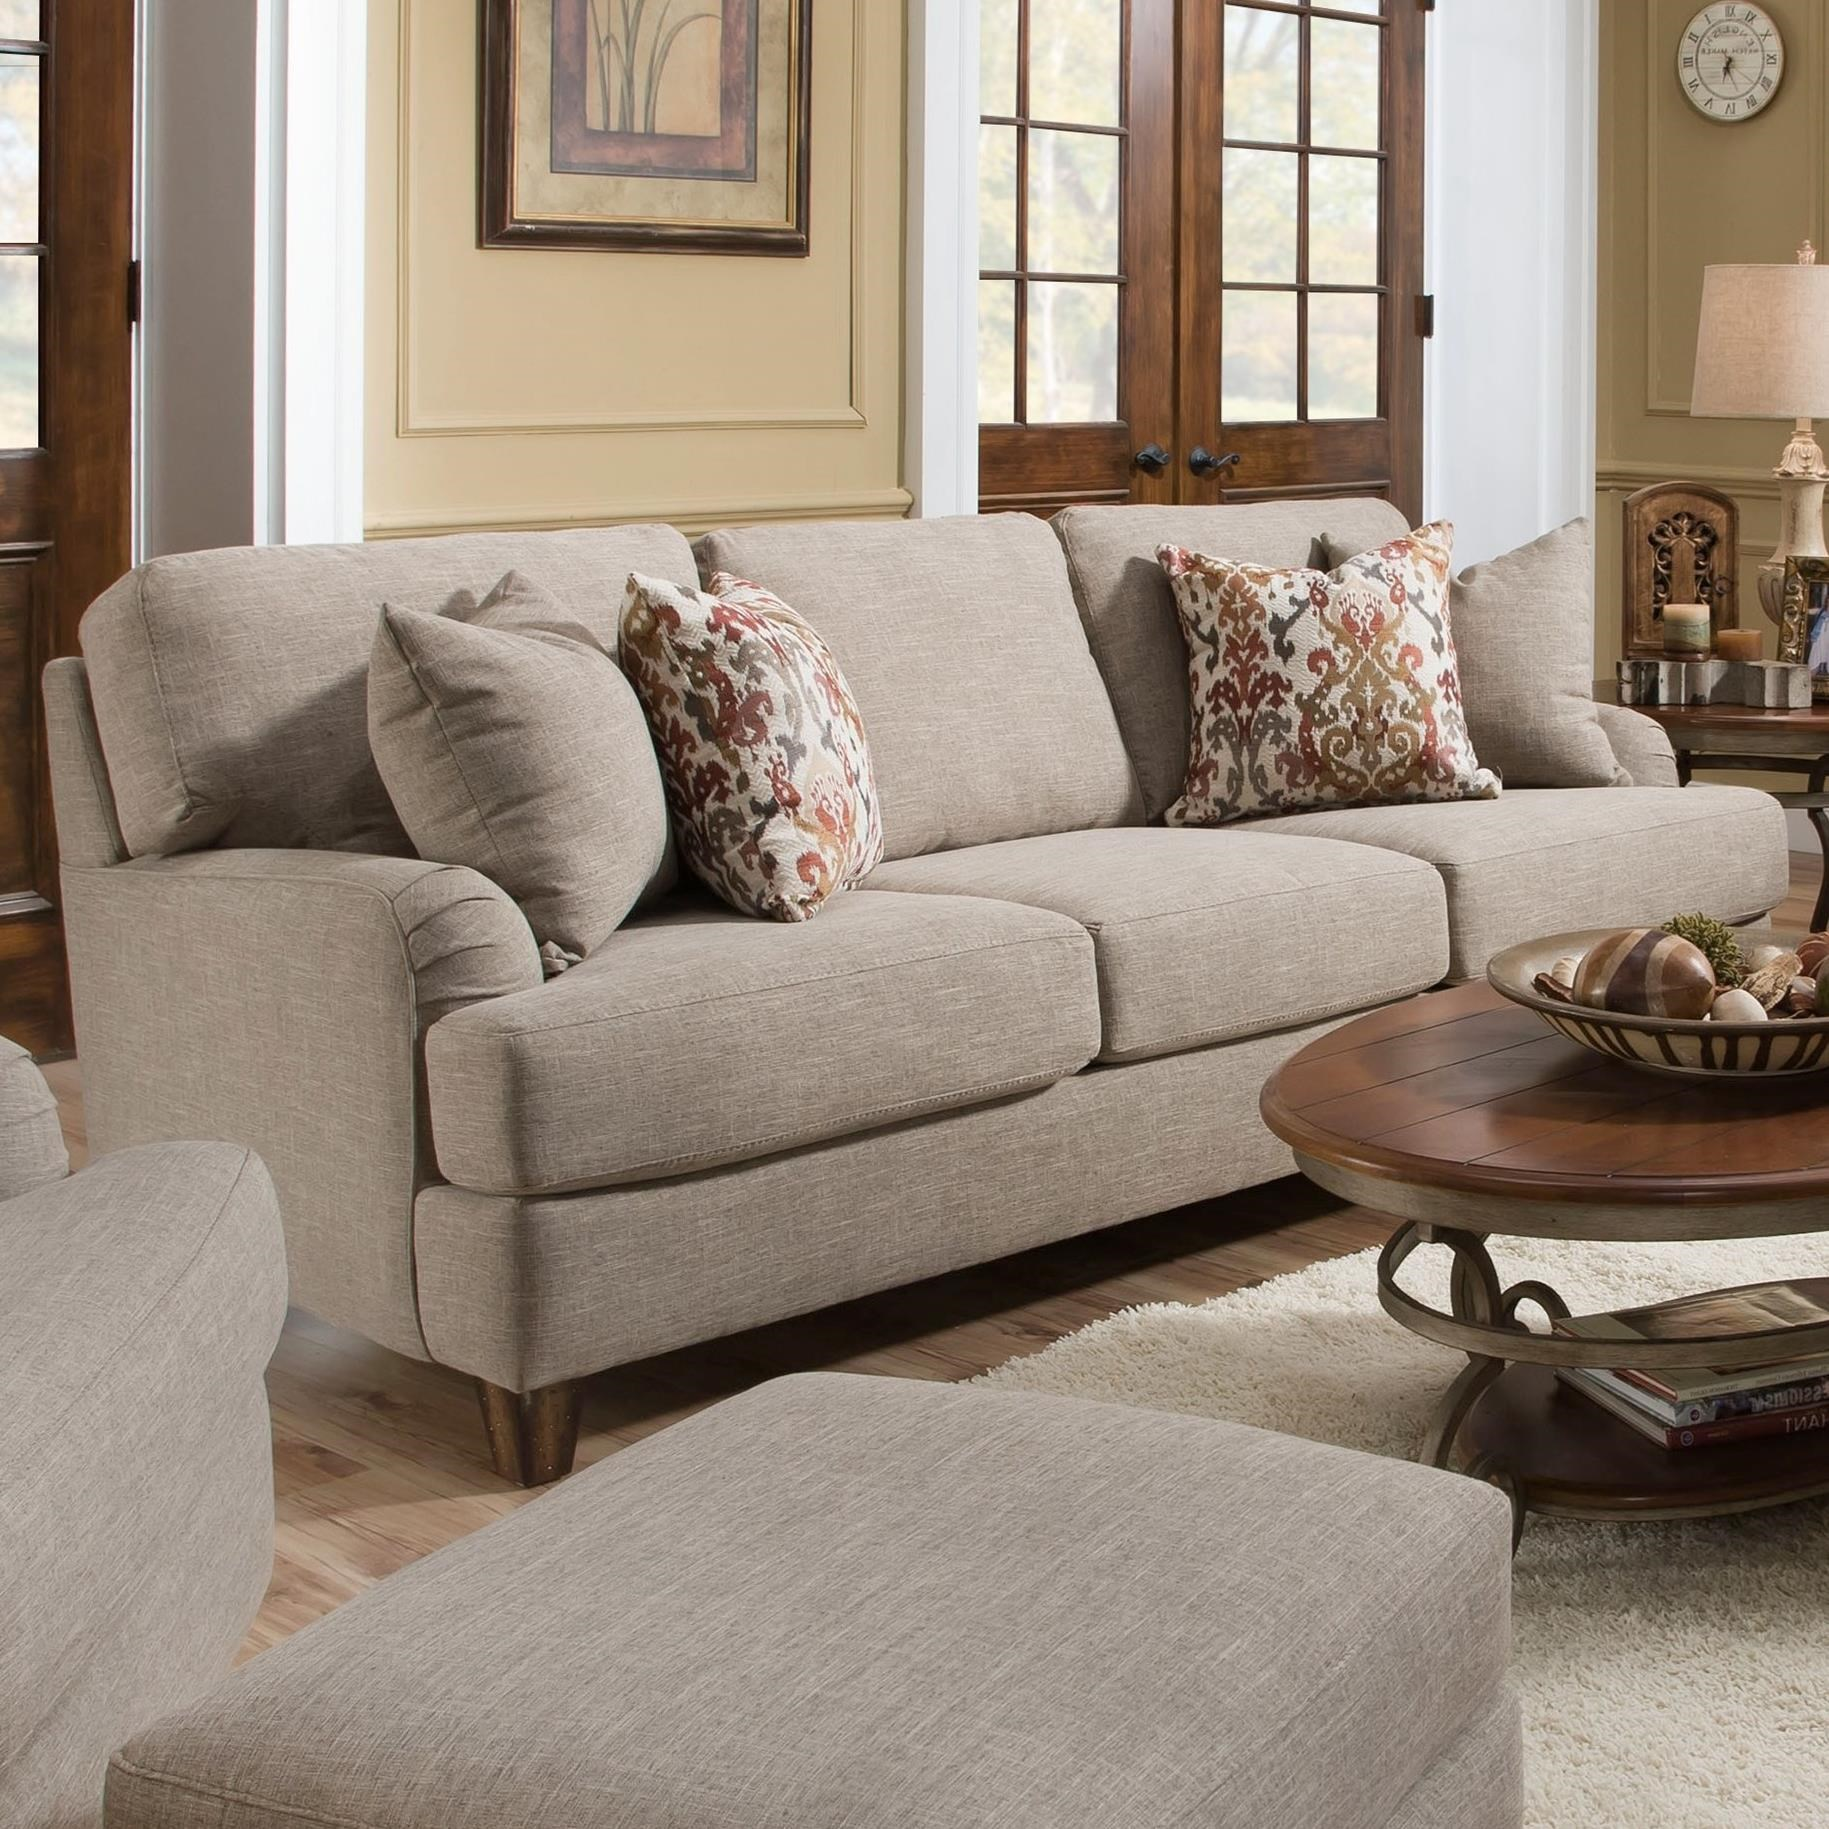 Carmel Sofa by Franklin at Wilcox Furniture